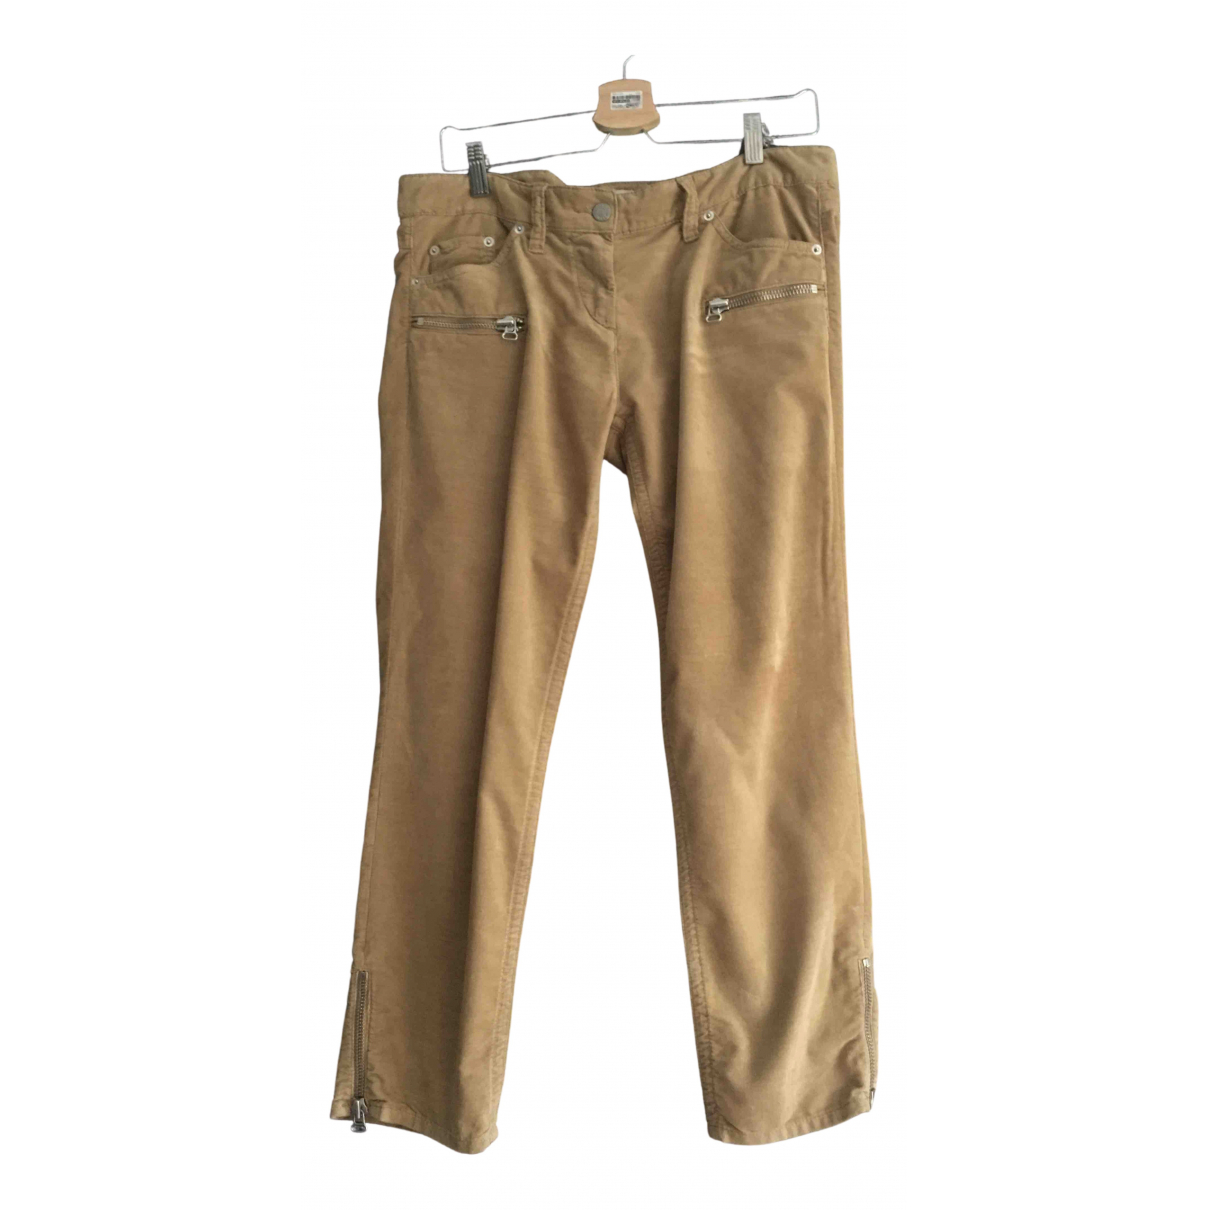 Isabel Marant Etoile N Camel Velvet Trousers for Women 42 FR